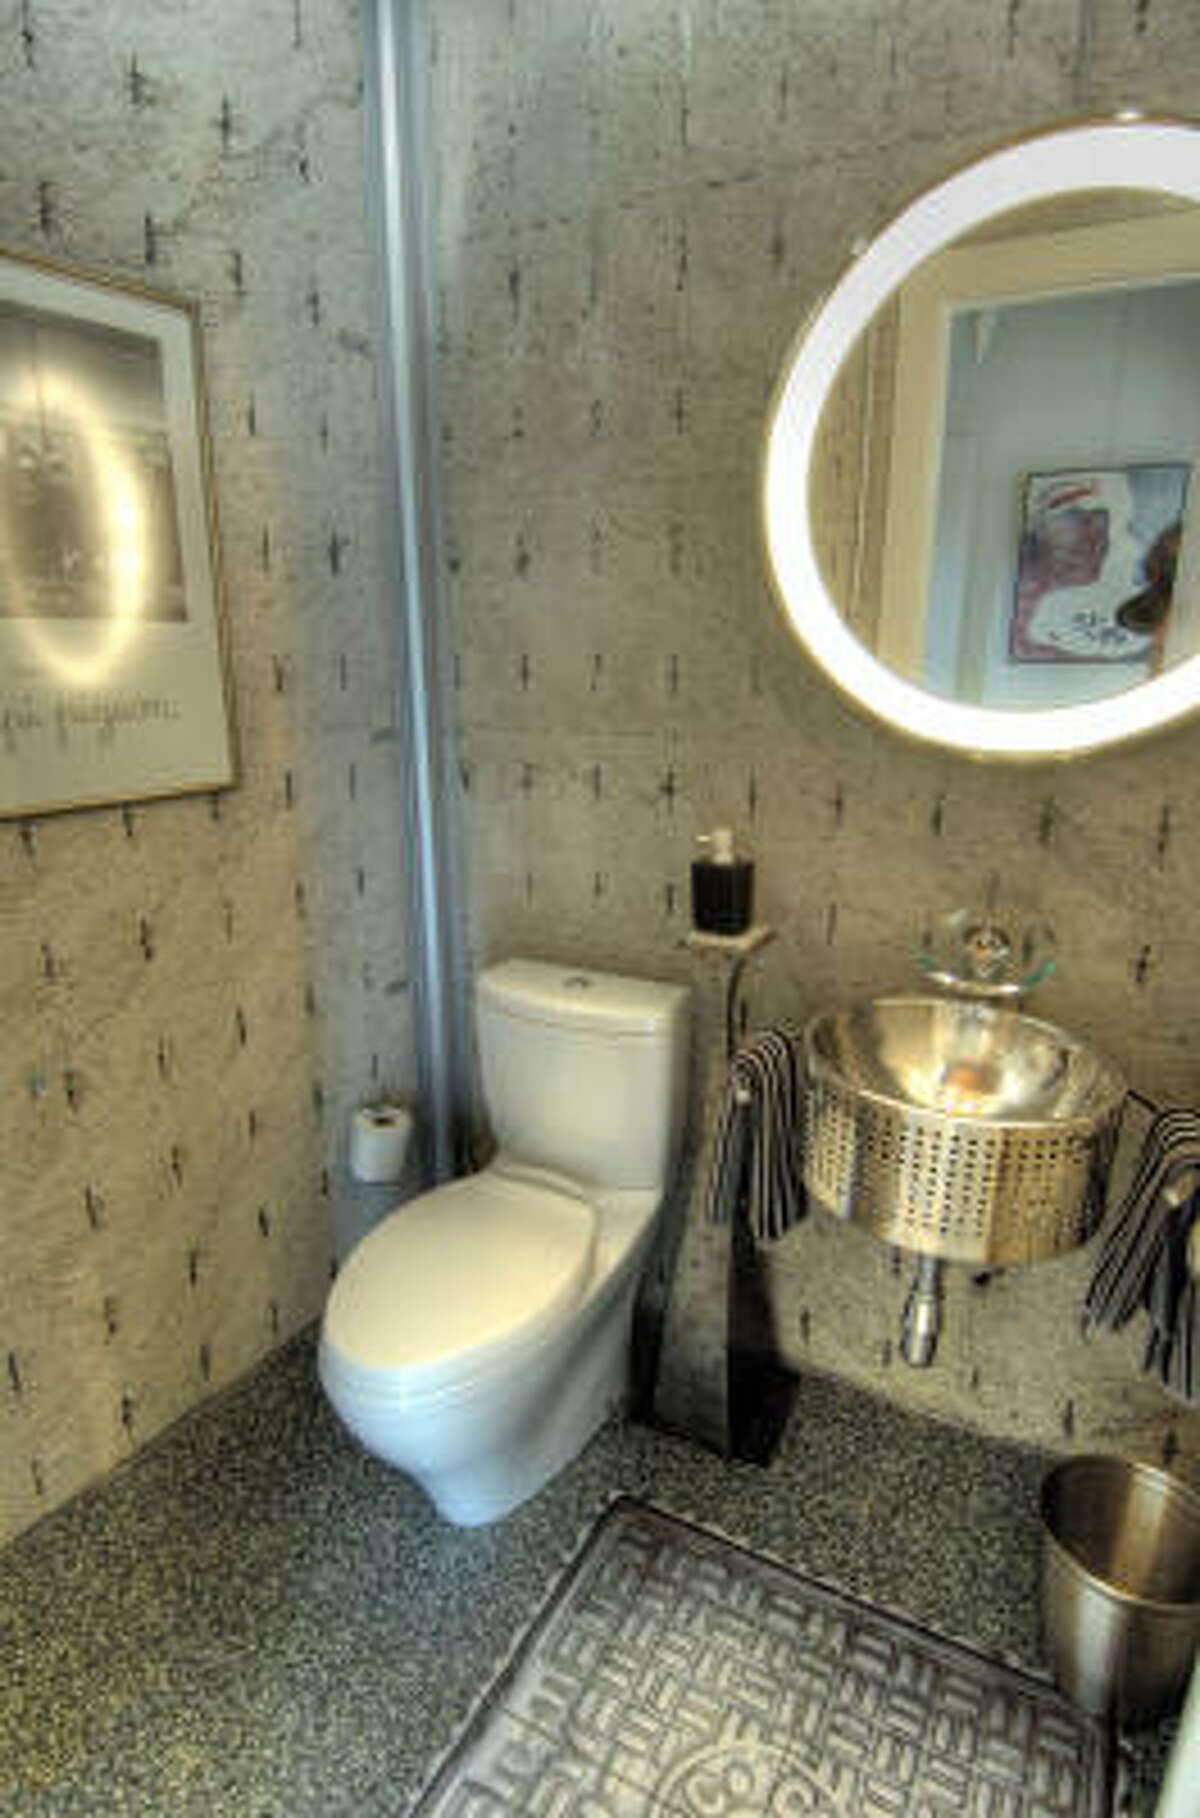 These bathroom floors are made of ground-up tires. Walls are exposed concrete containing bits of Styrofoam to lessen the amount of of cement needed.